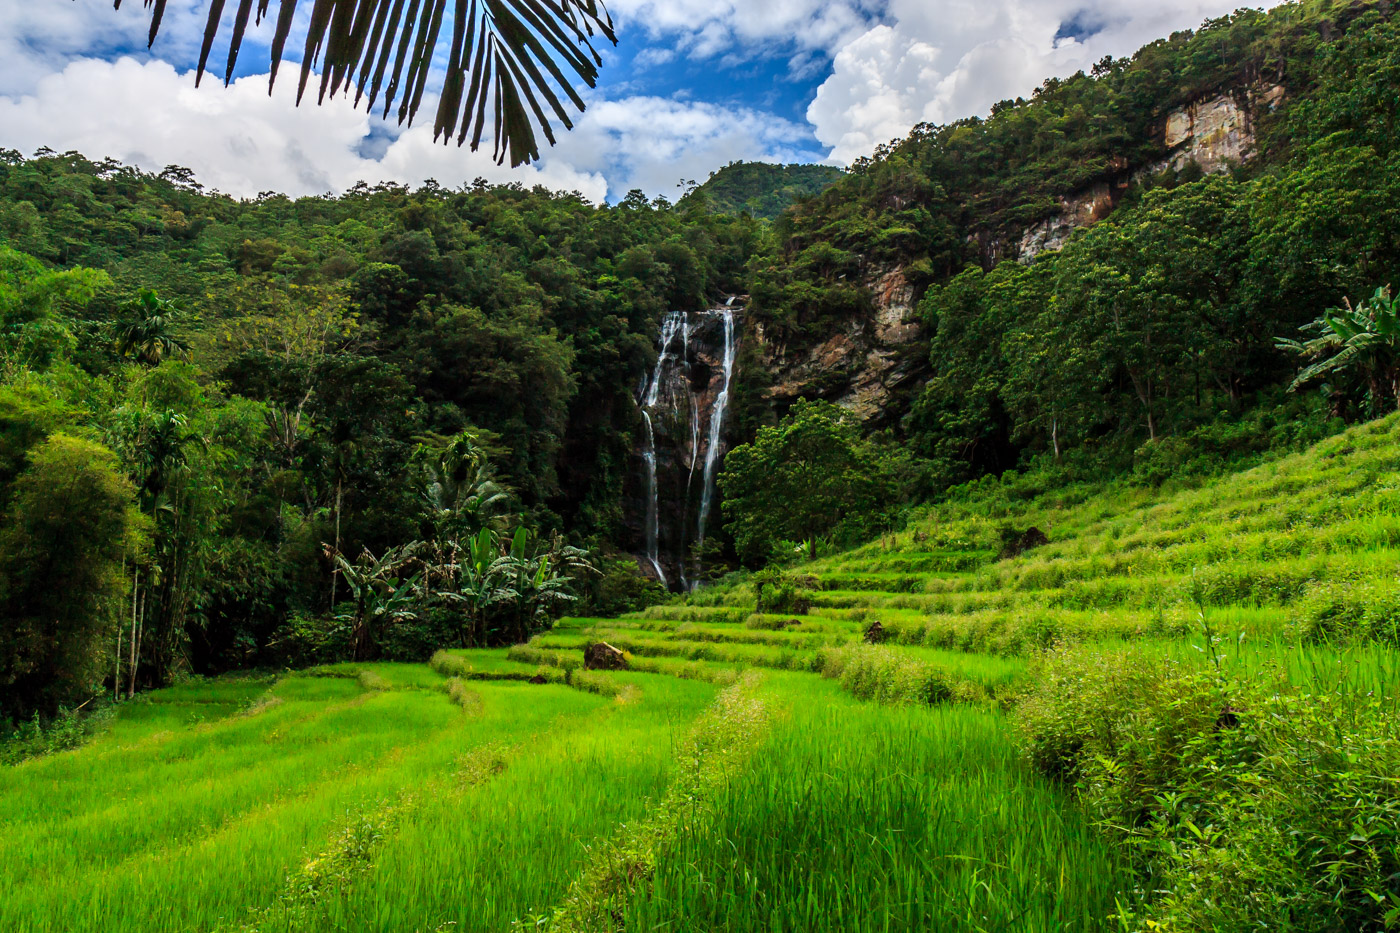 The waterfall was impressively located over rice terraces.